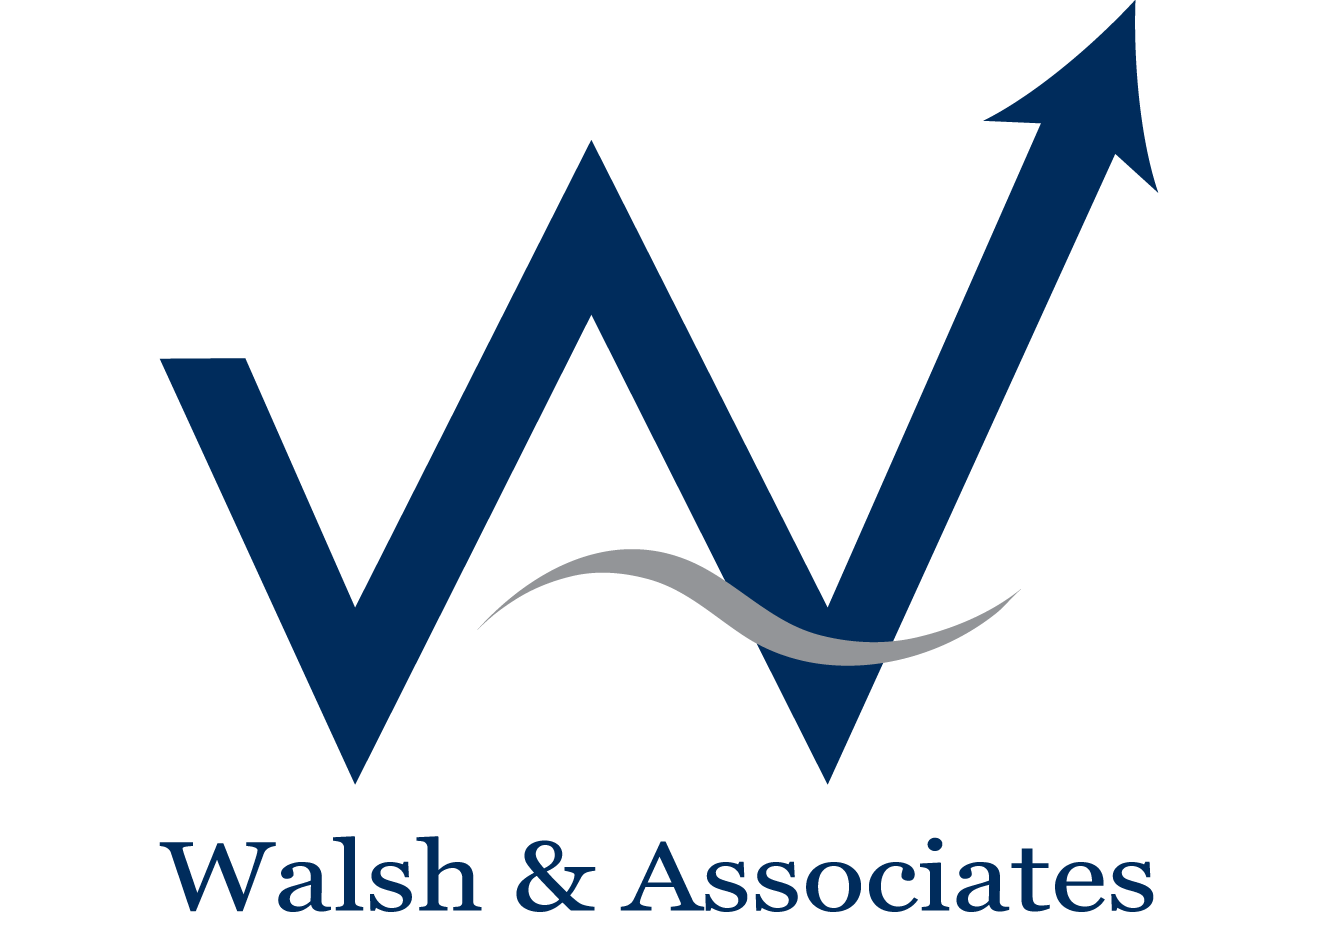 Walsh A Registered Investment Advisor NO LTD or reg inv adv png